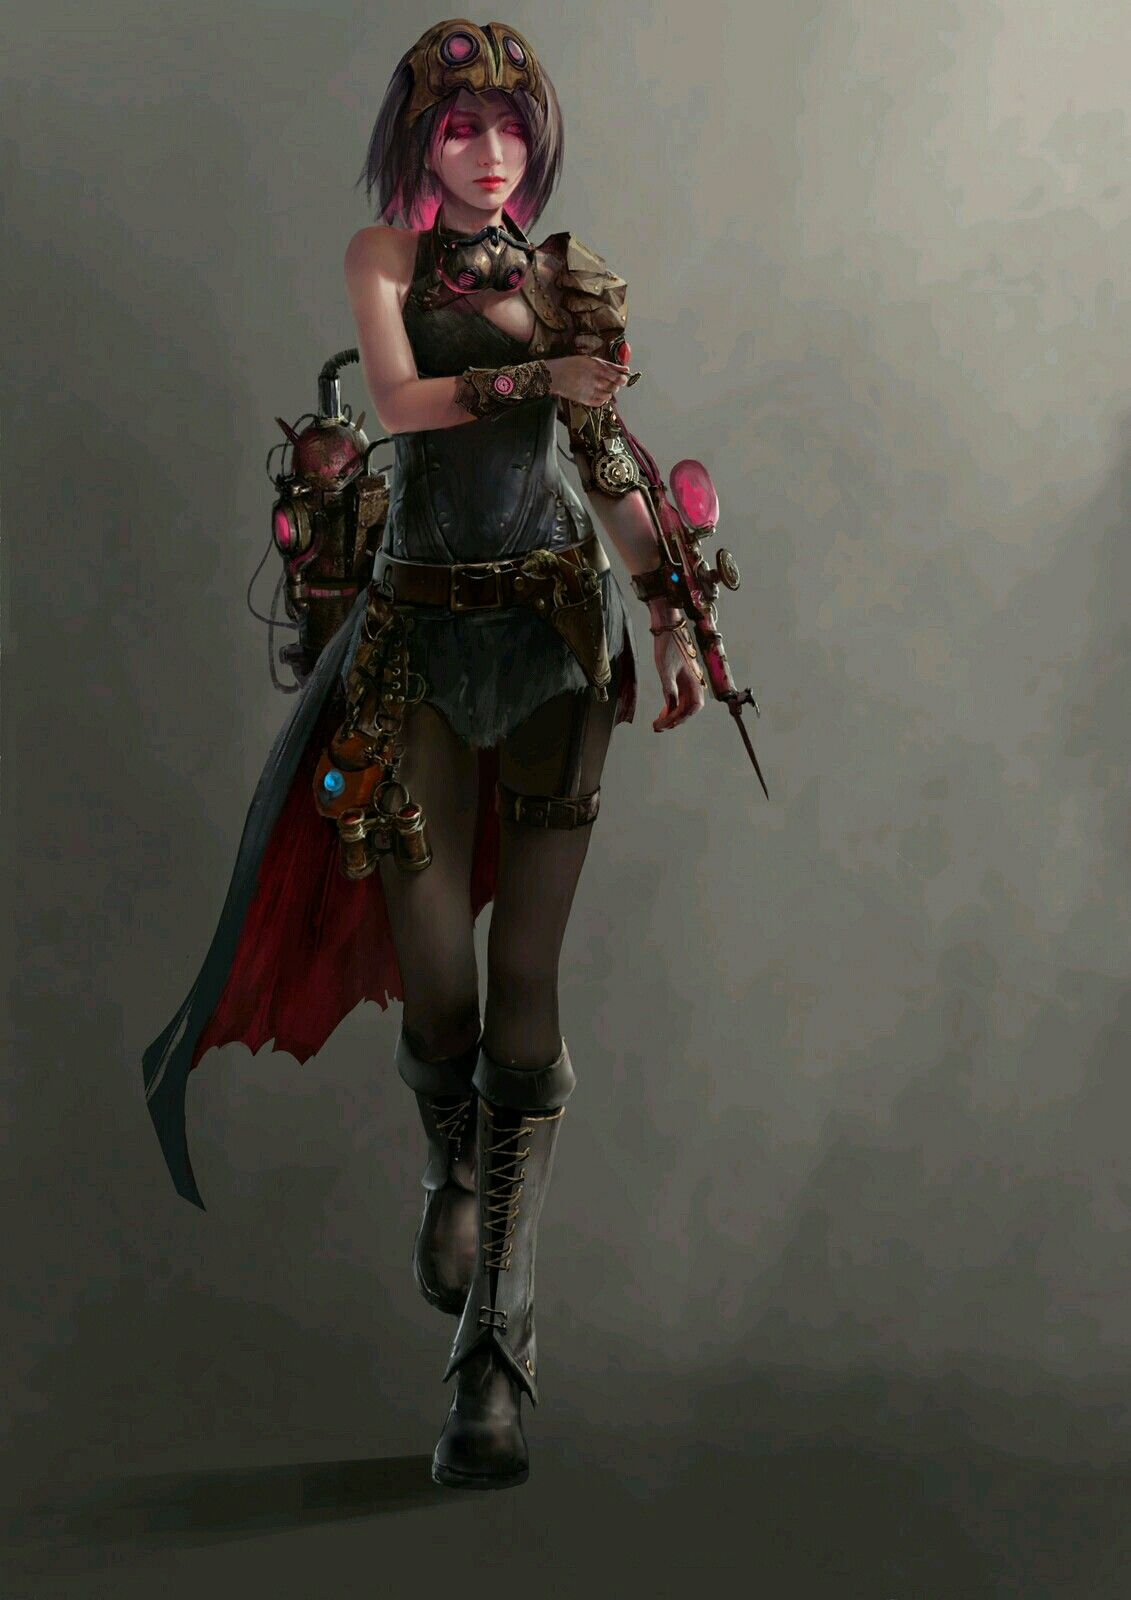 Steampunk Citizens Inspiration In